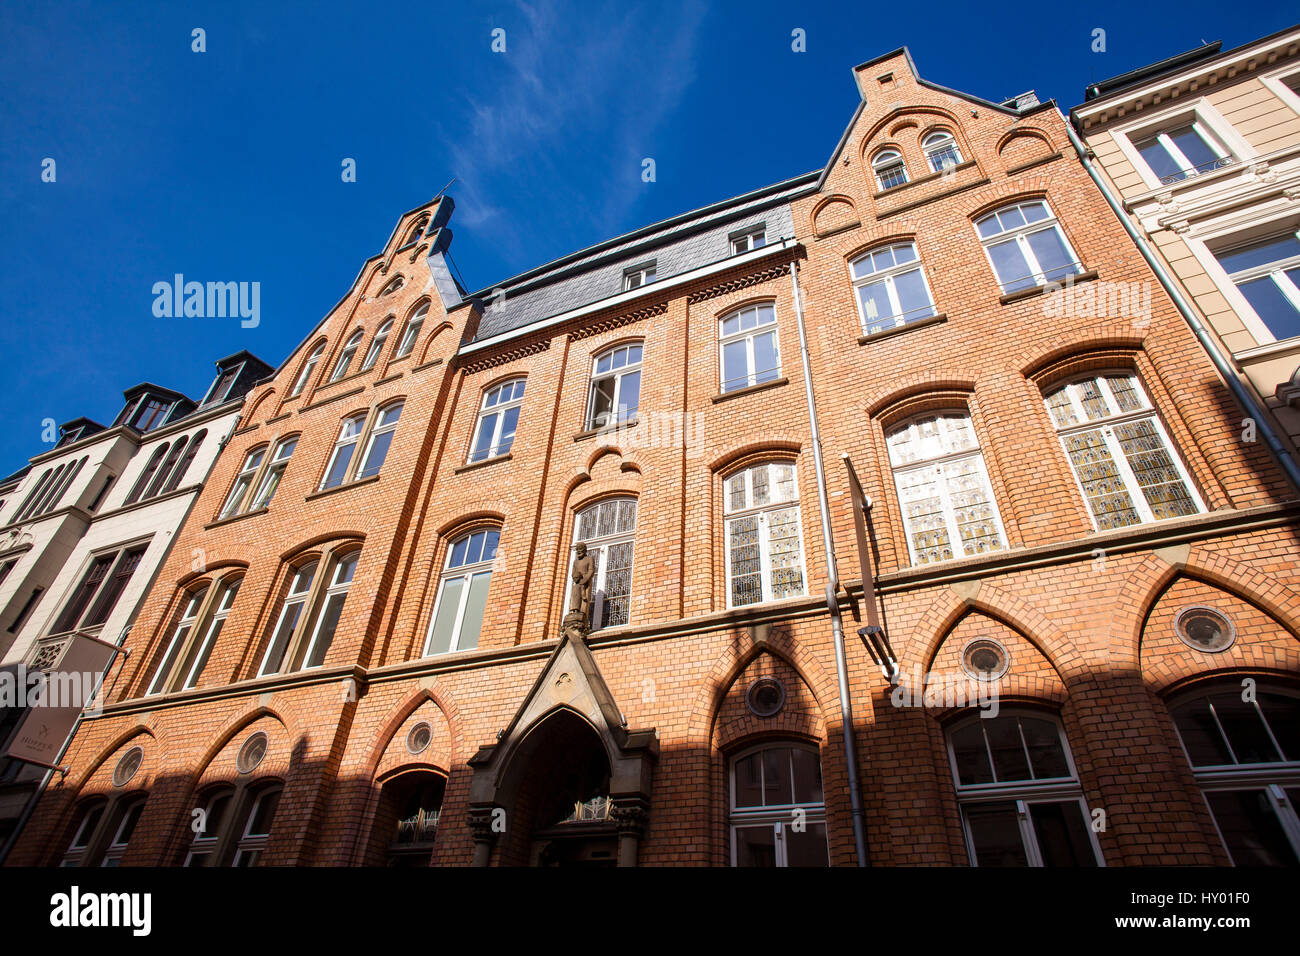 Germany, Cologne, the Hopper Hotel St. Josef in the Dreikoenigenstreet in the south part of the town. - Stock Image